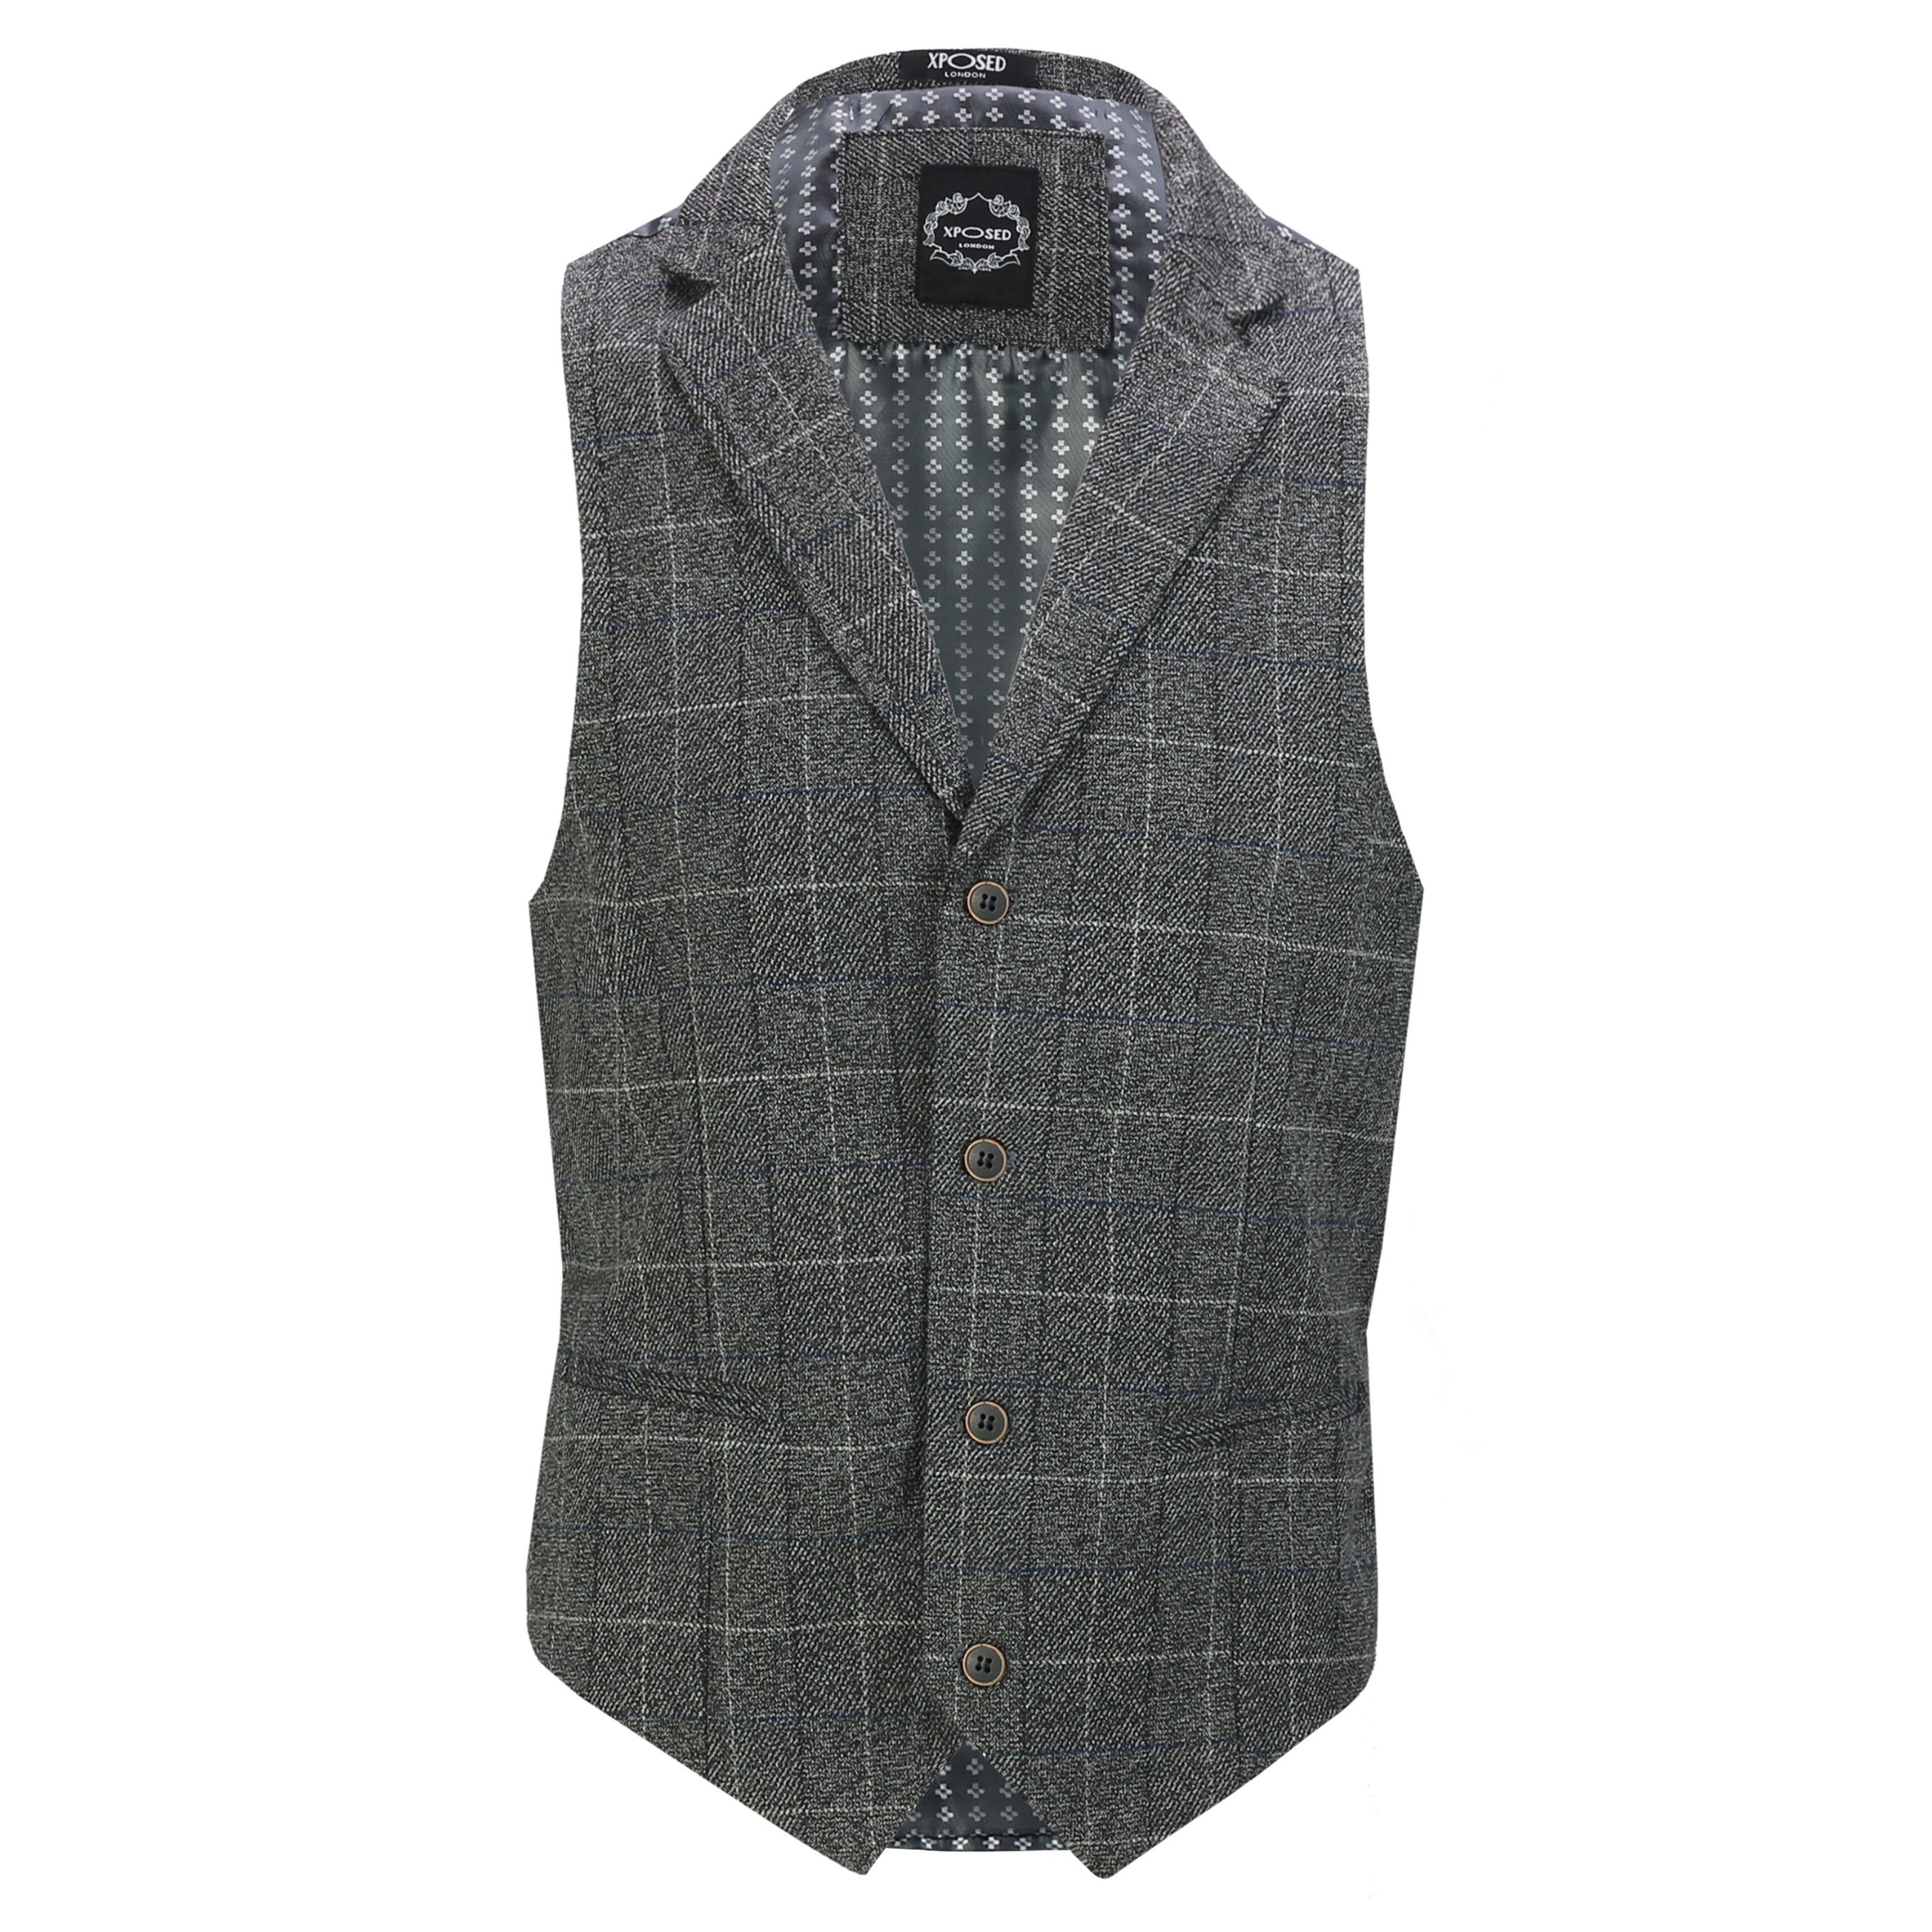 Mens-Classic-Collar-Waistcoat-Retro-Vintage-Style-Tailored-Fit-Smart-Formal-Vest thumbnail 15